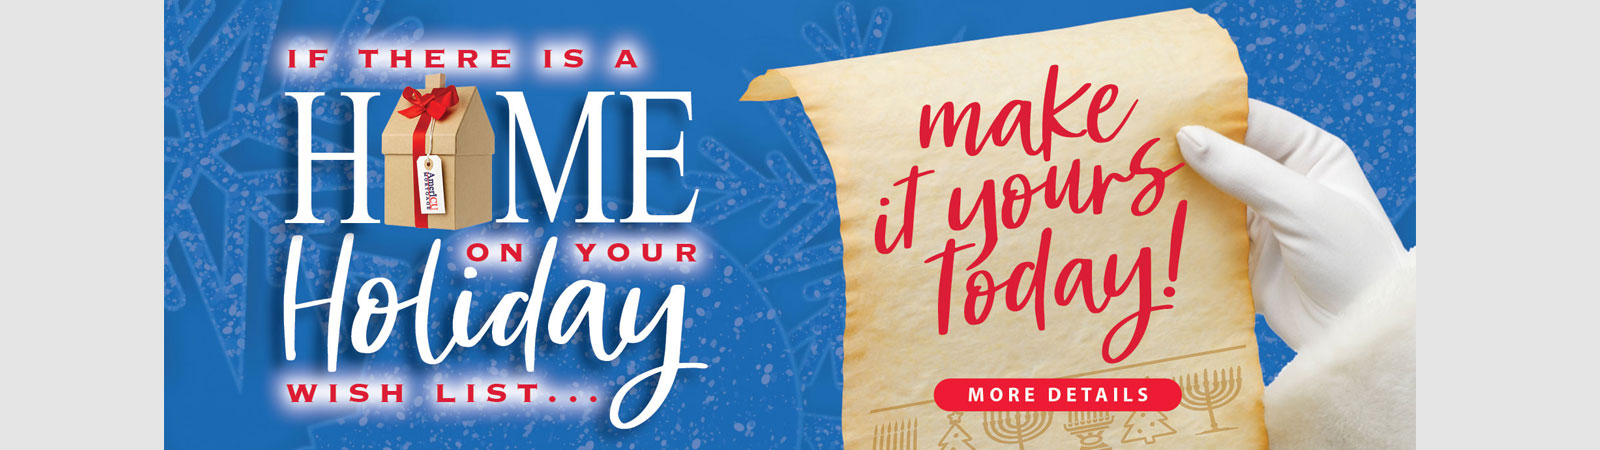 If there is a home on your holiday list, make it your's today